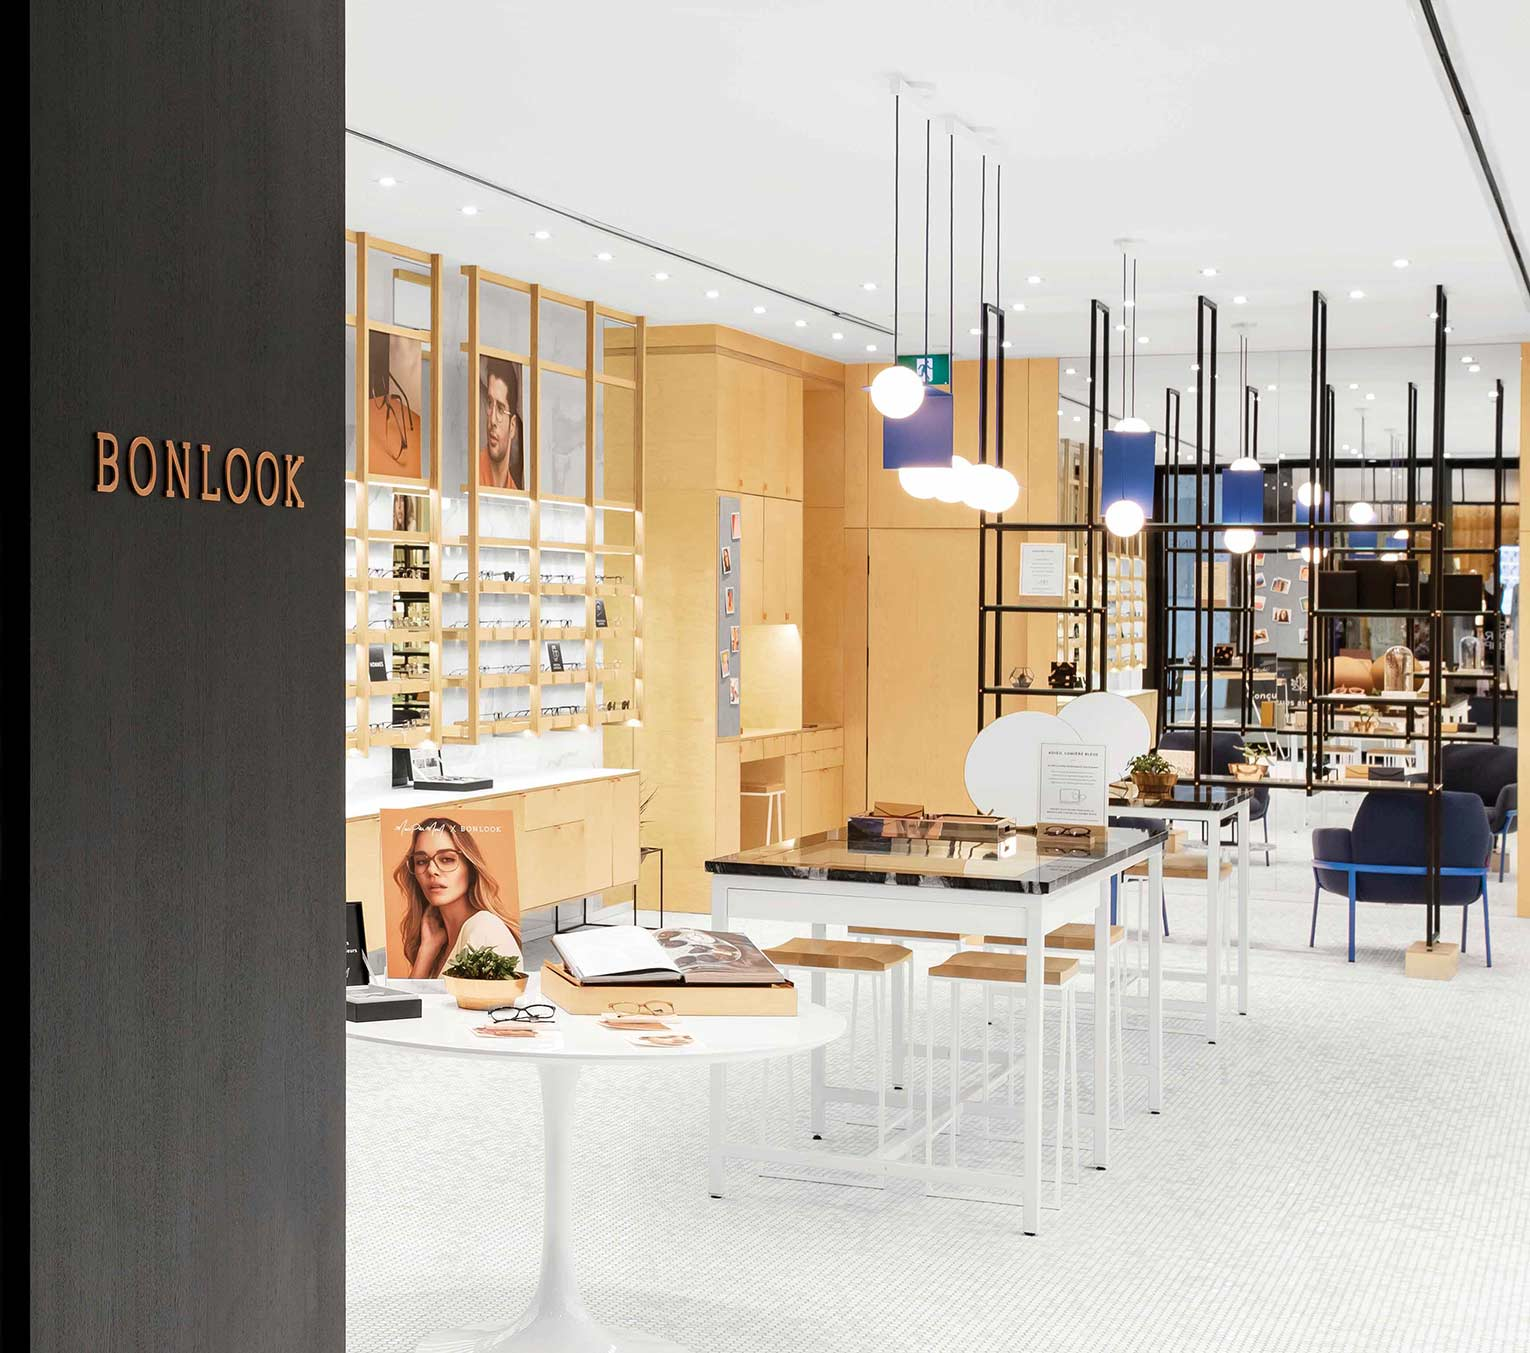 The inside of a BonLook retail location.